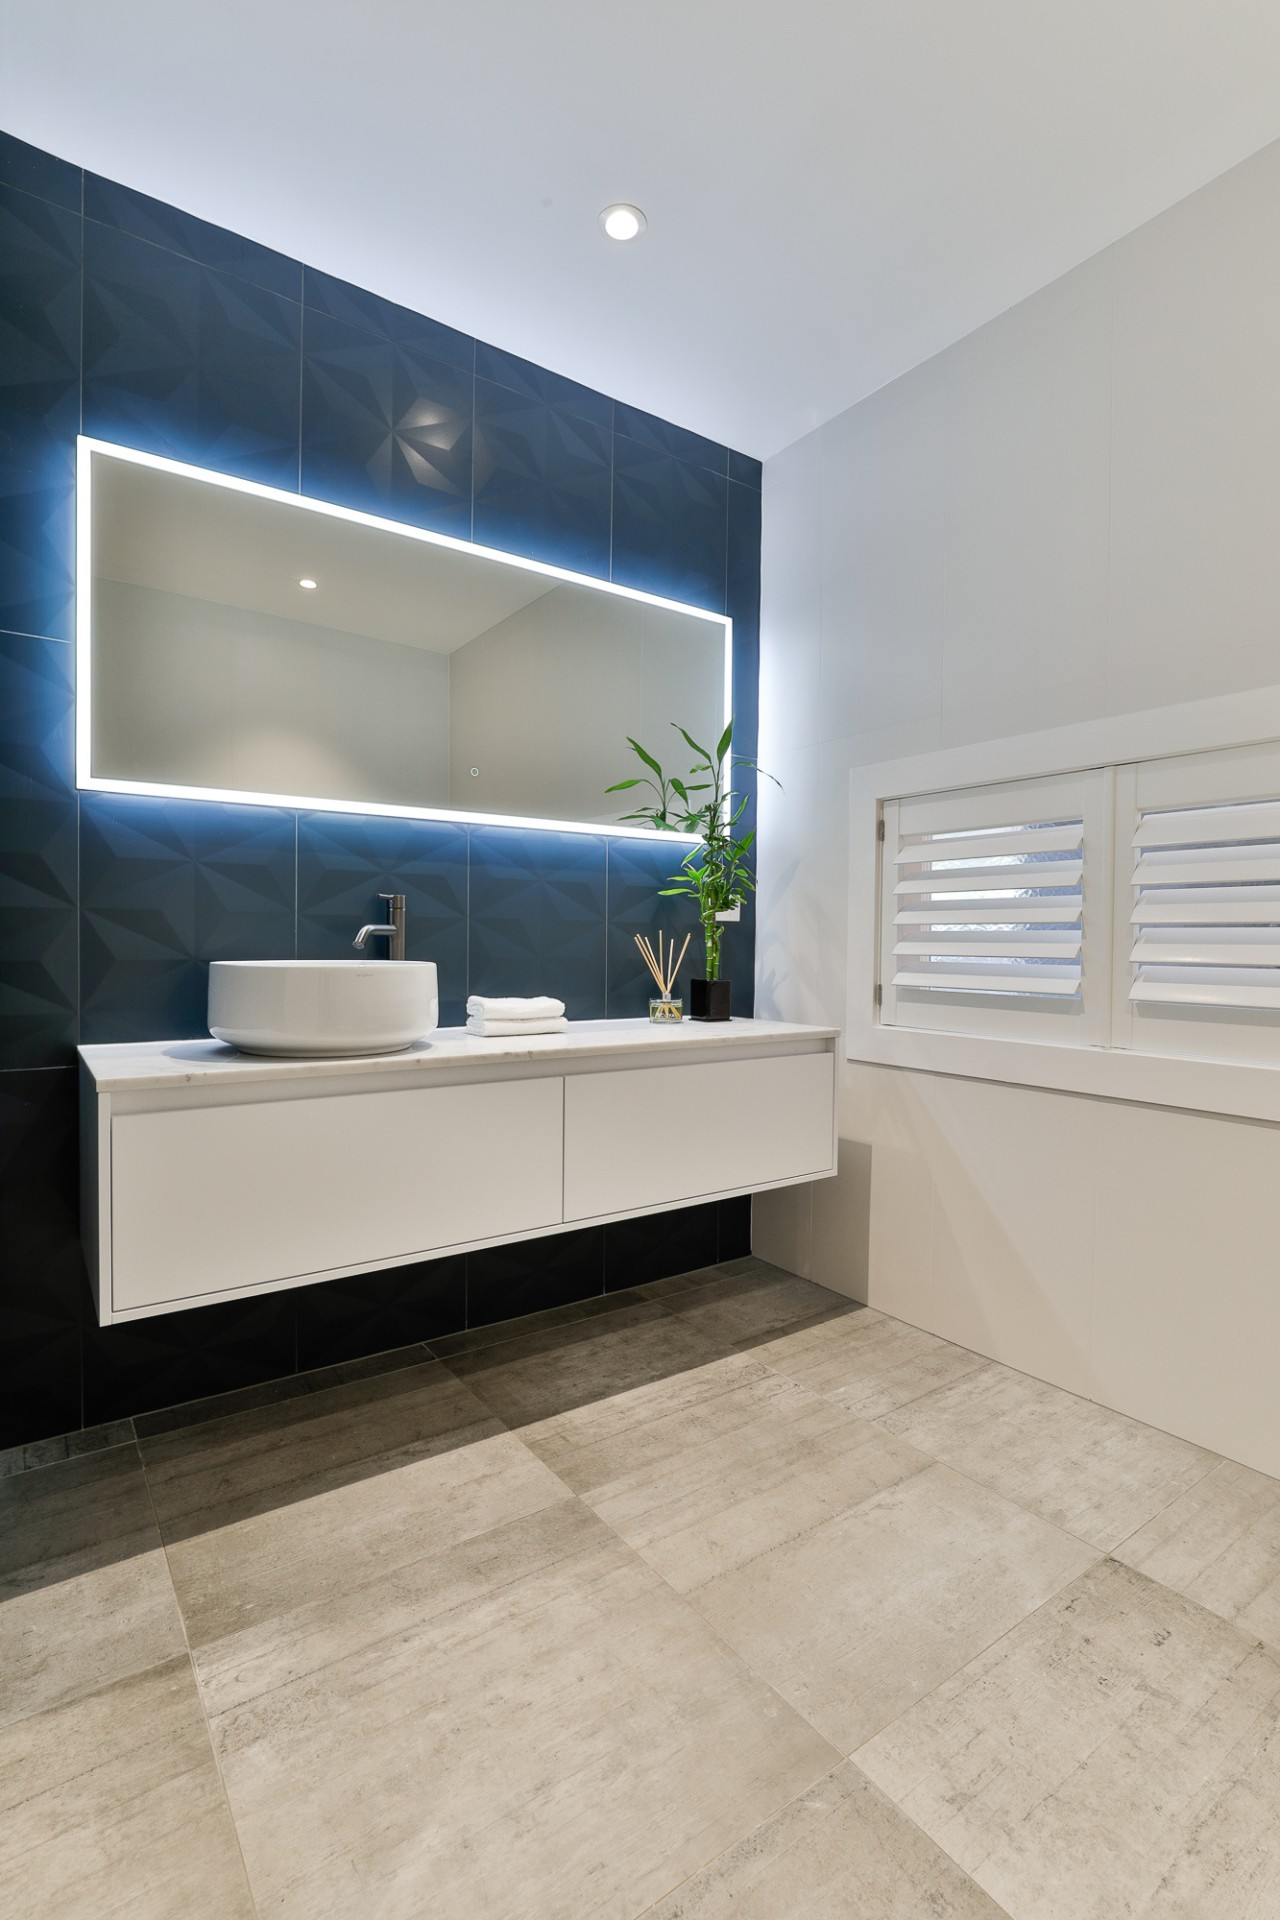 The floors in both the ensuite and bathroom